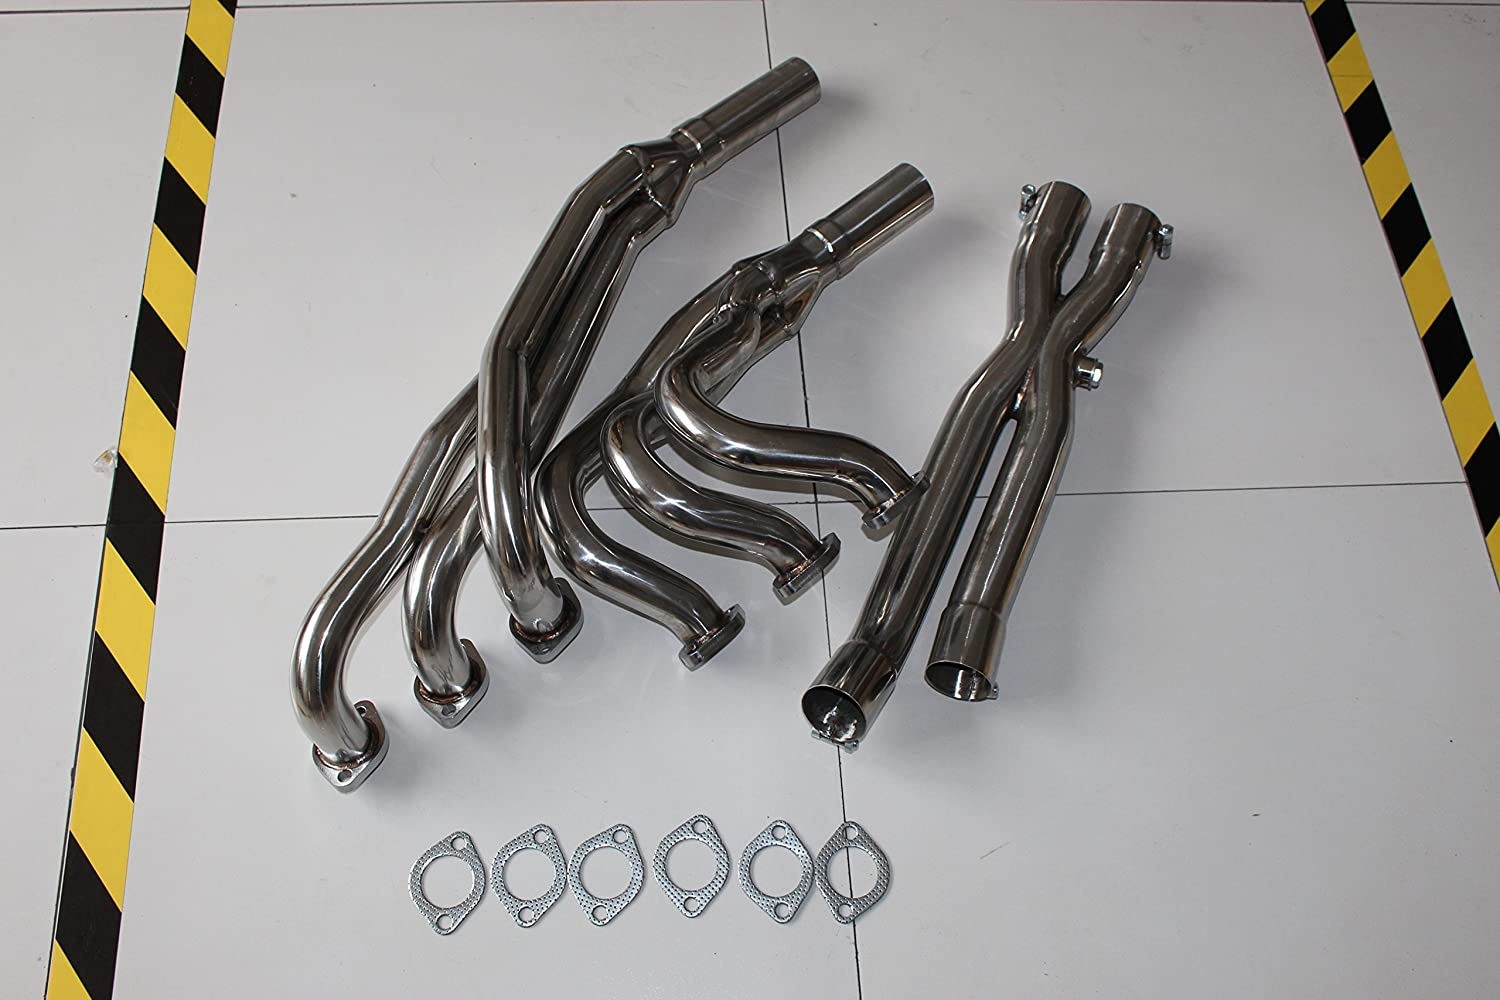 Racing Sport Manifold Exhaust Header+Y-Pipe for BMW 86-91 E30 3 Series 2.5L 2.7L